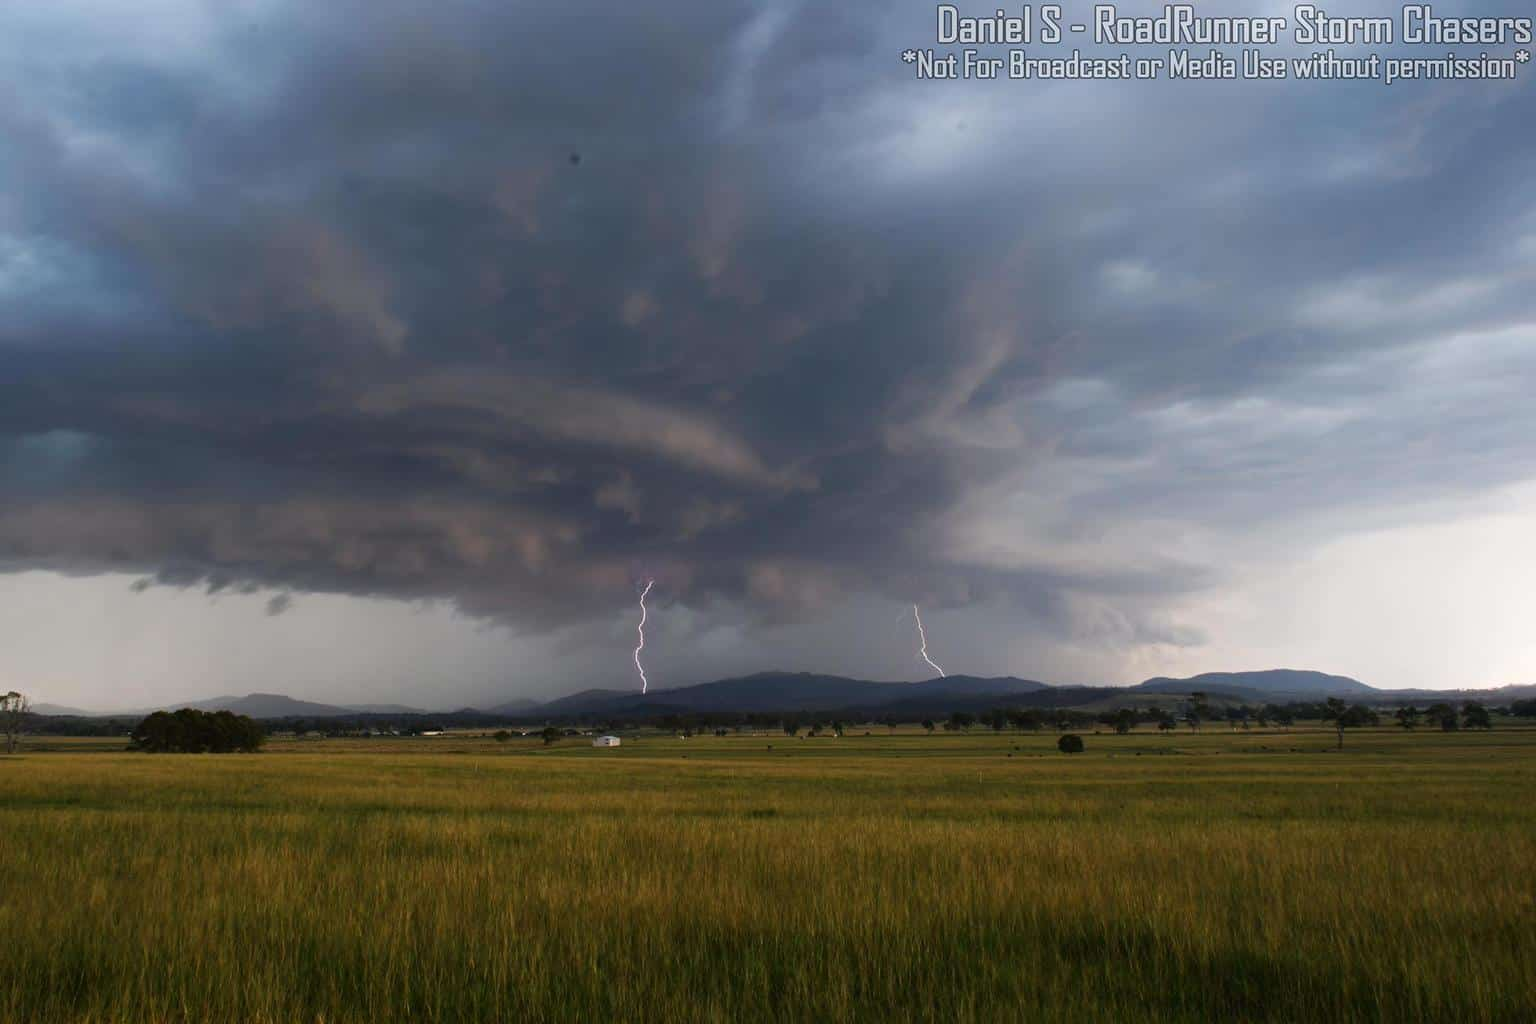 Awesome Supercell that produced Very Large Hail up to 7cm in diameter and Destructive Winds up to 100km/h+. 11th February 2018. Beaudesert, QLD Australia.